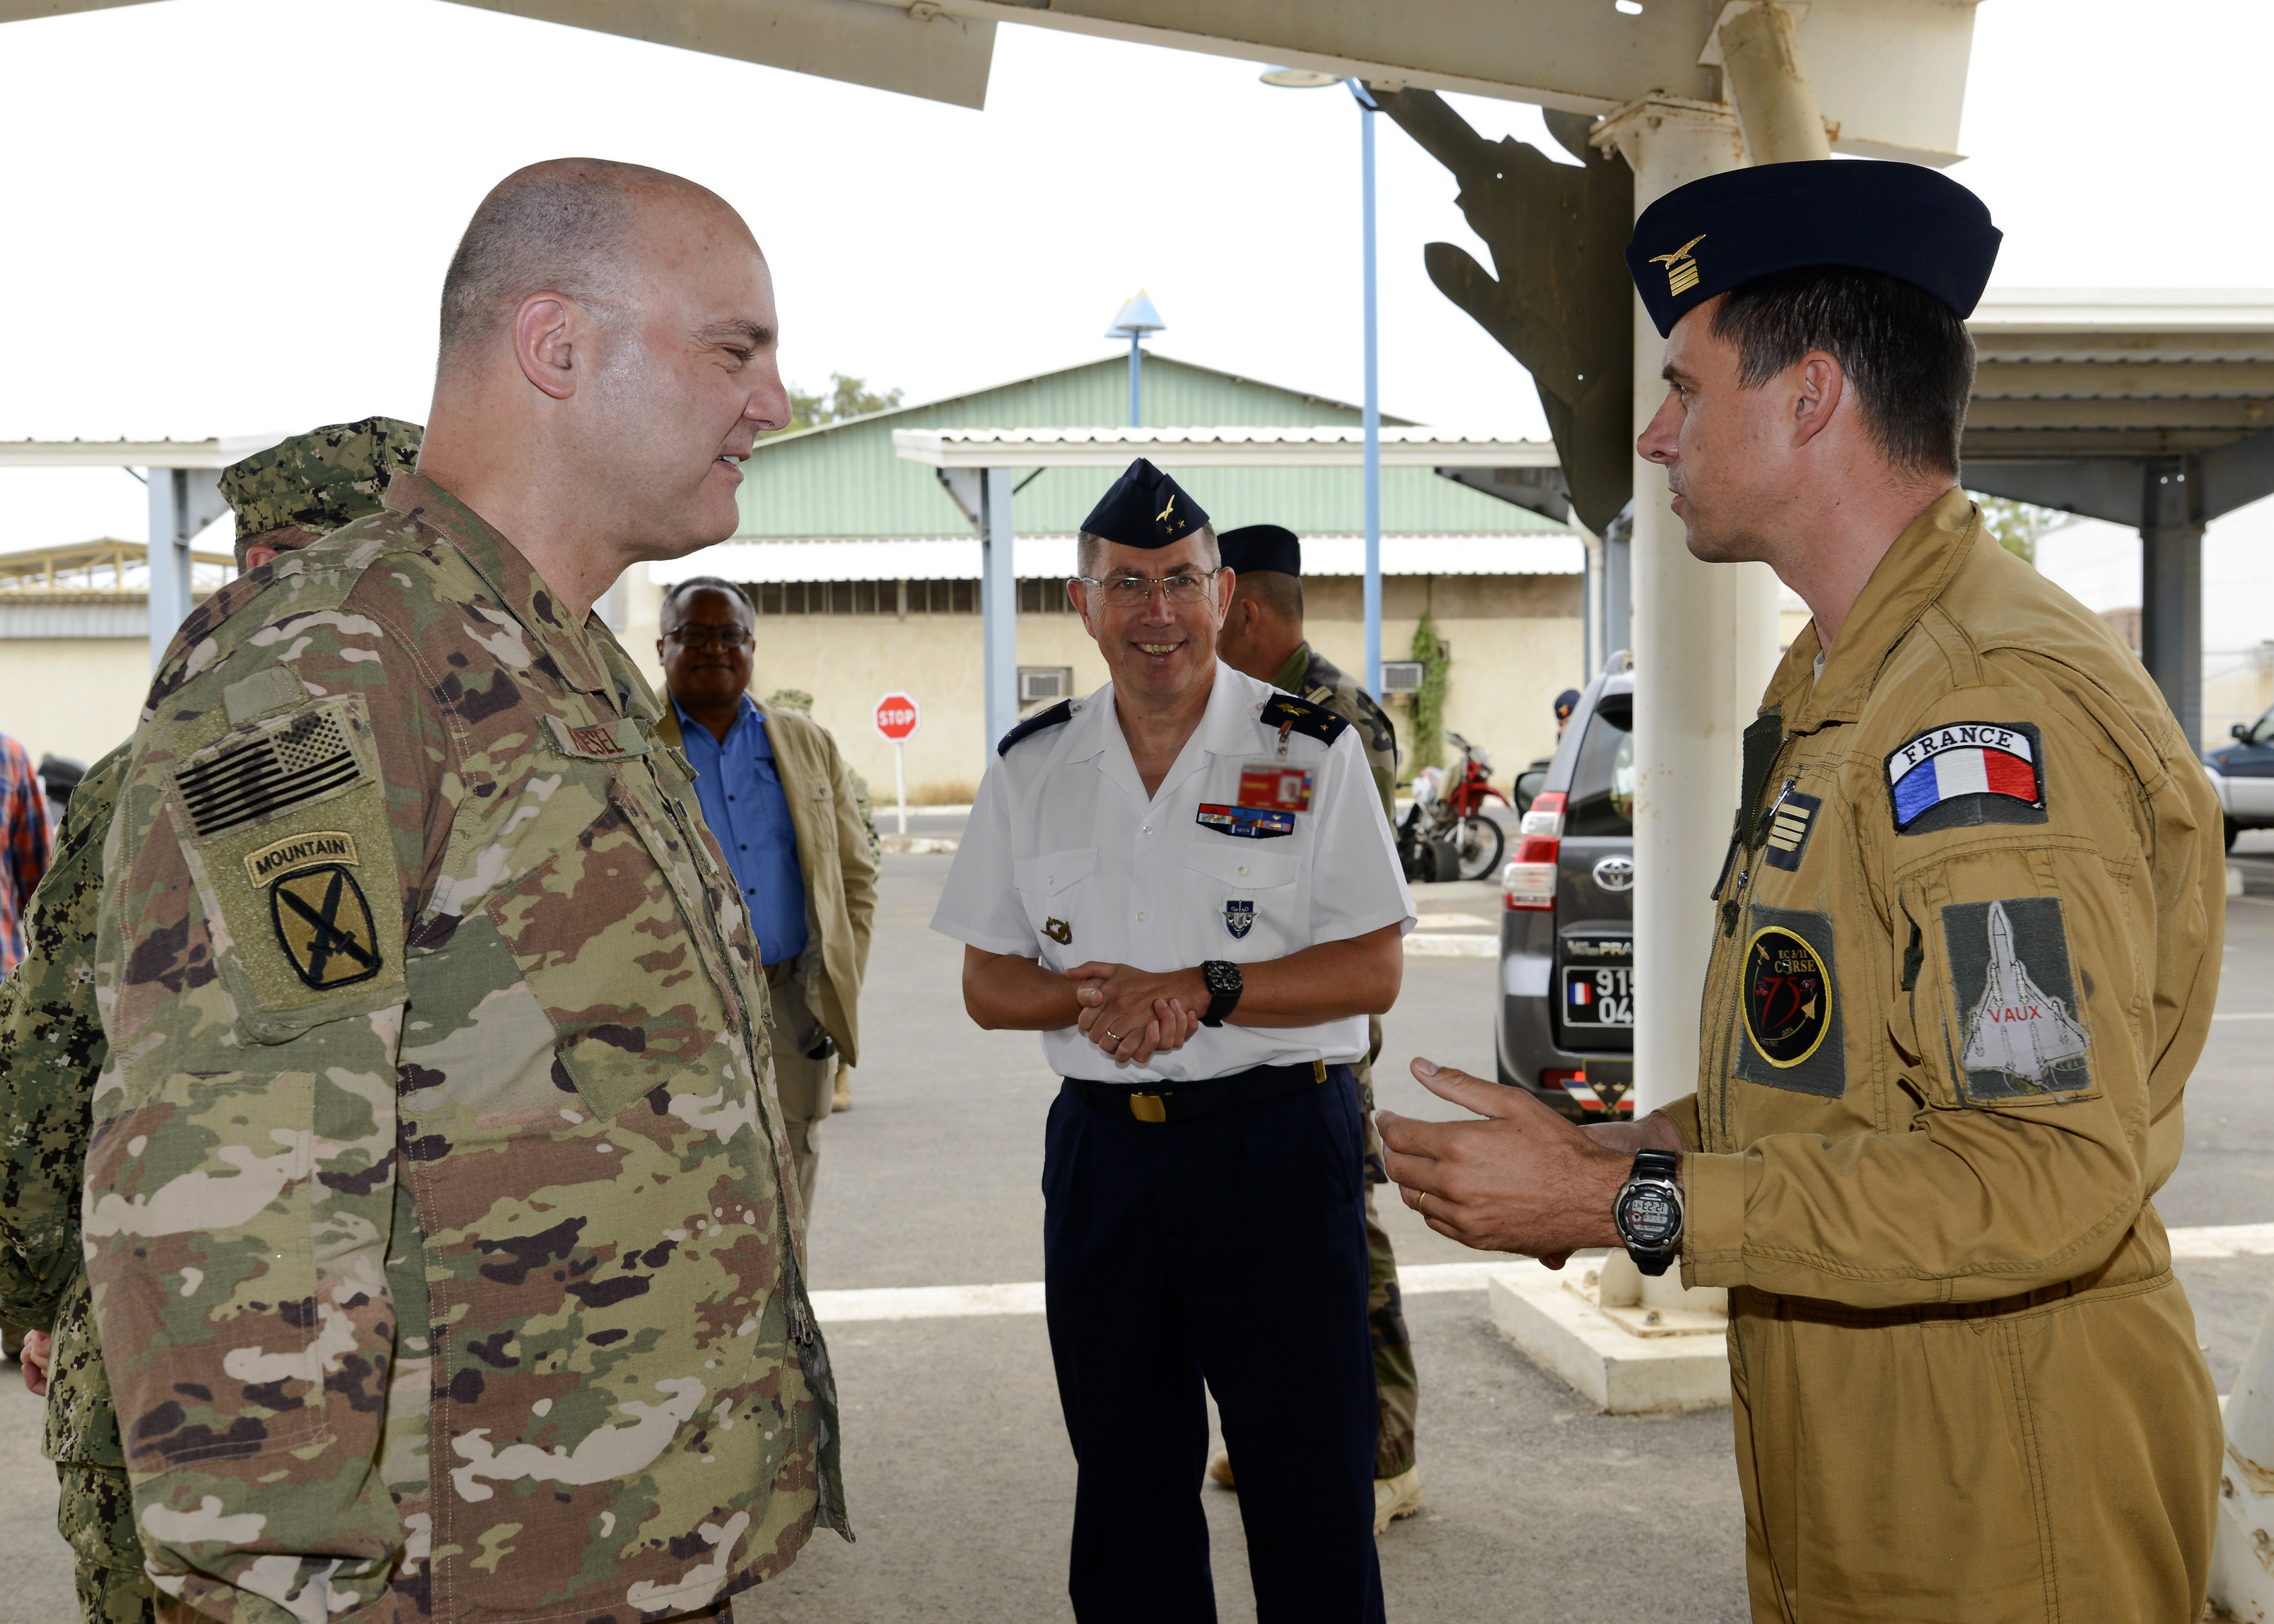 U.S. Air Force Brig. Gen. James R. Kriesel (left), deputy commanding general of Combined Joint Task Force-Horn of Africa (CJTF-HOA), speaks with French air force Maj. Baptiste, a fighter squadron executive officer, during his visit to French Air Force Base 188, Djibouti, Feb. 19, 2019. Kriesel visited the French base to gain insight into their assets and capabilities as a U.S. ally in CJTF-HOA's combined joint operations area. (Courtesy Photo)